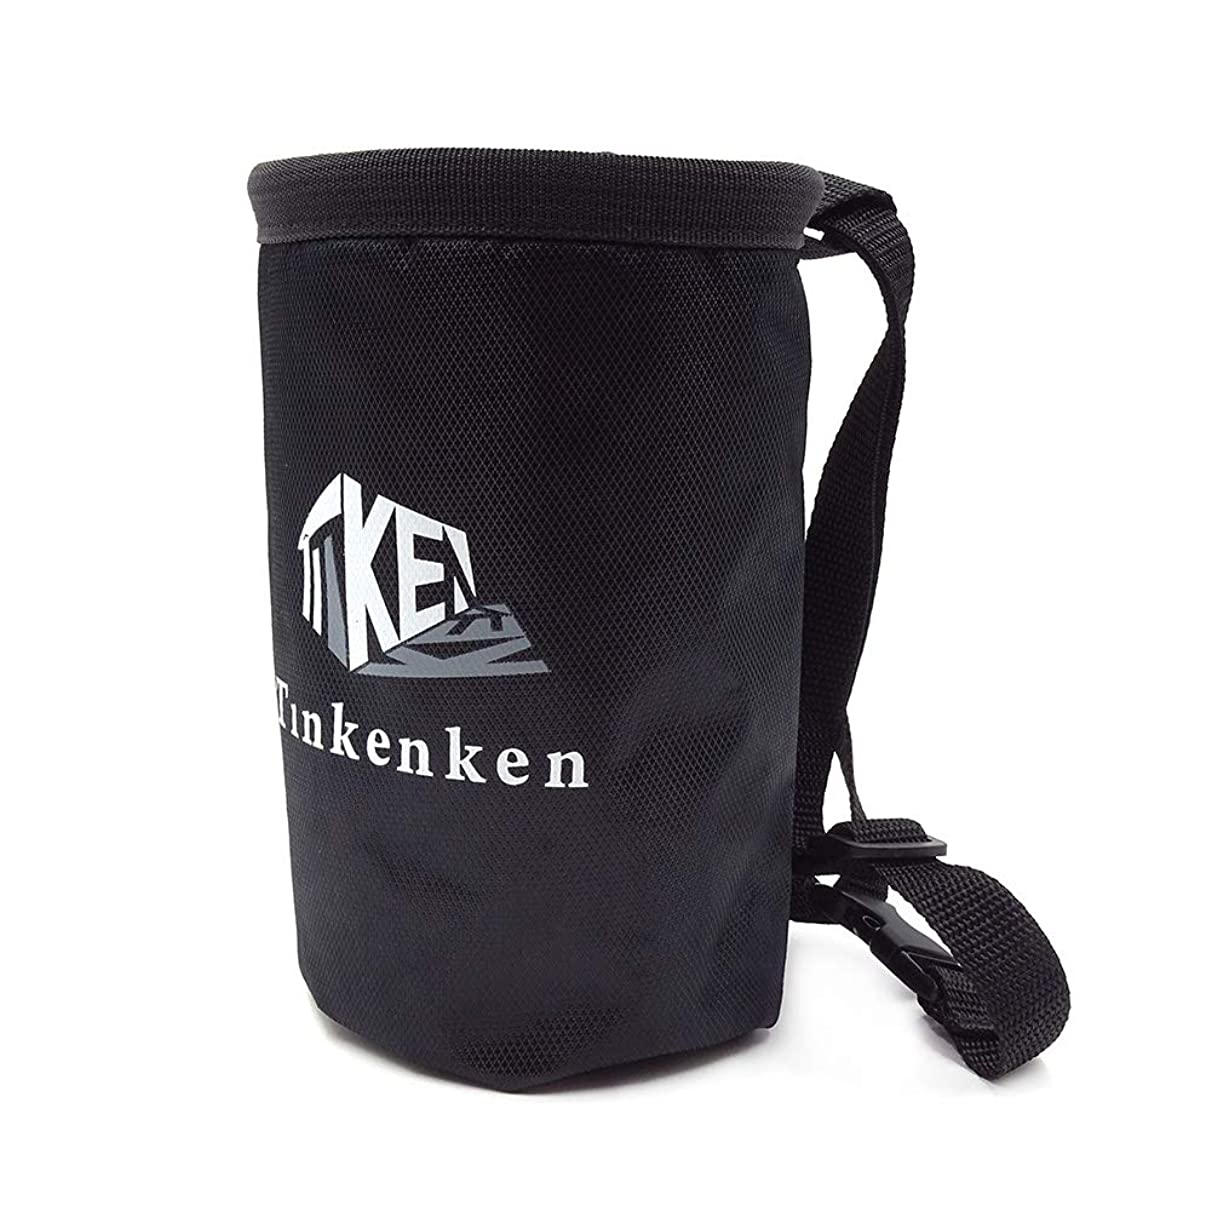 Tinkenken Chalk Bag for Rock Climbing with Adjustable Belt and Zippered Pocket for Weight Lifting Bouldering Gymnastics